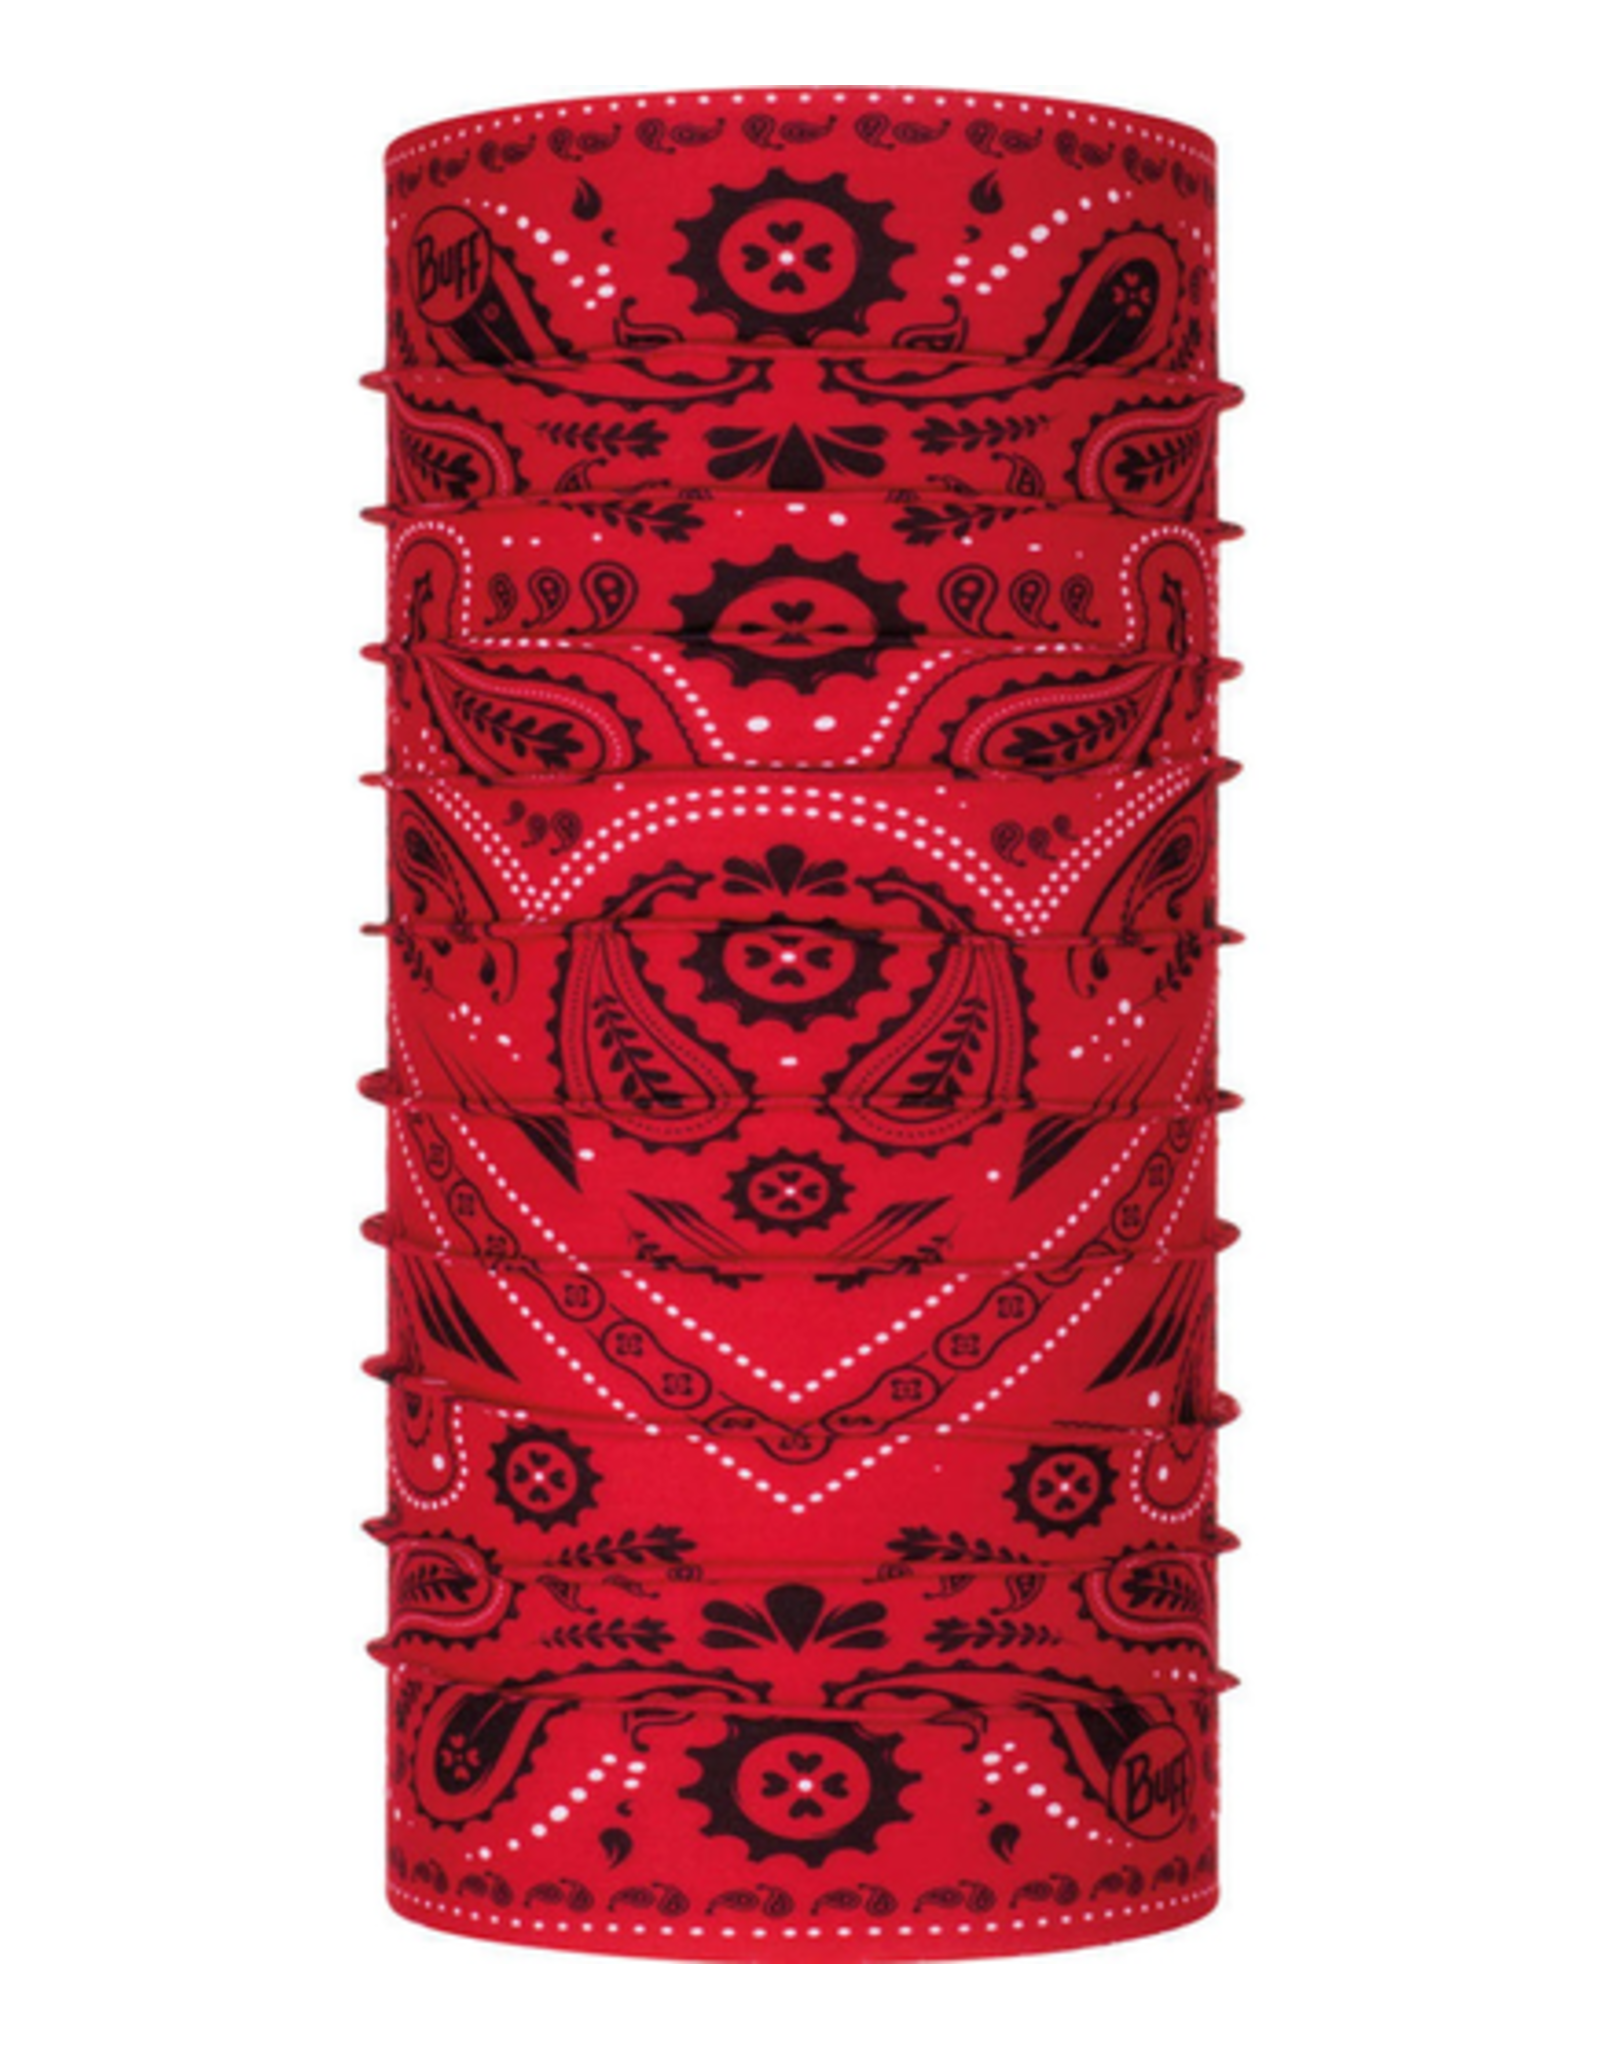 BUFF BUFF Original Cashmere Red